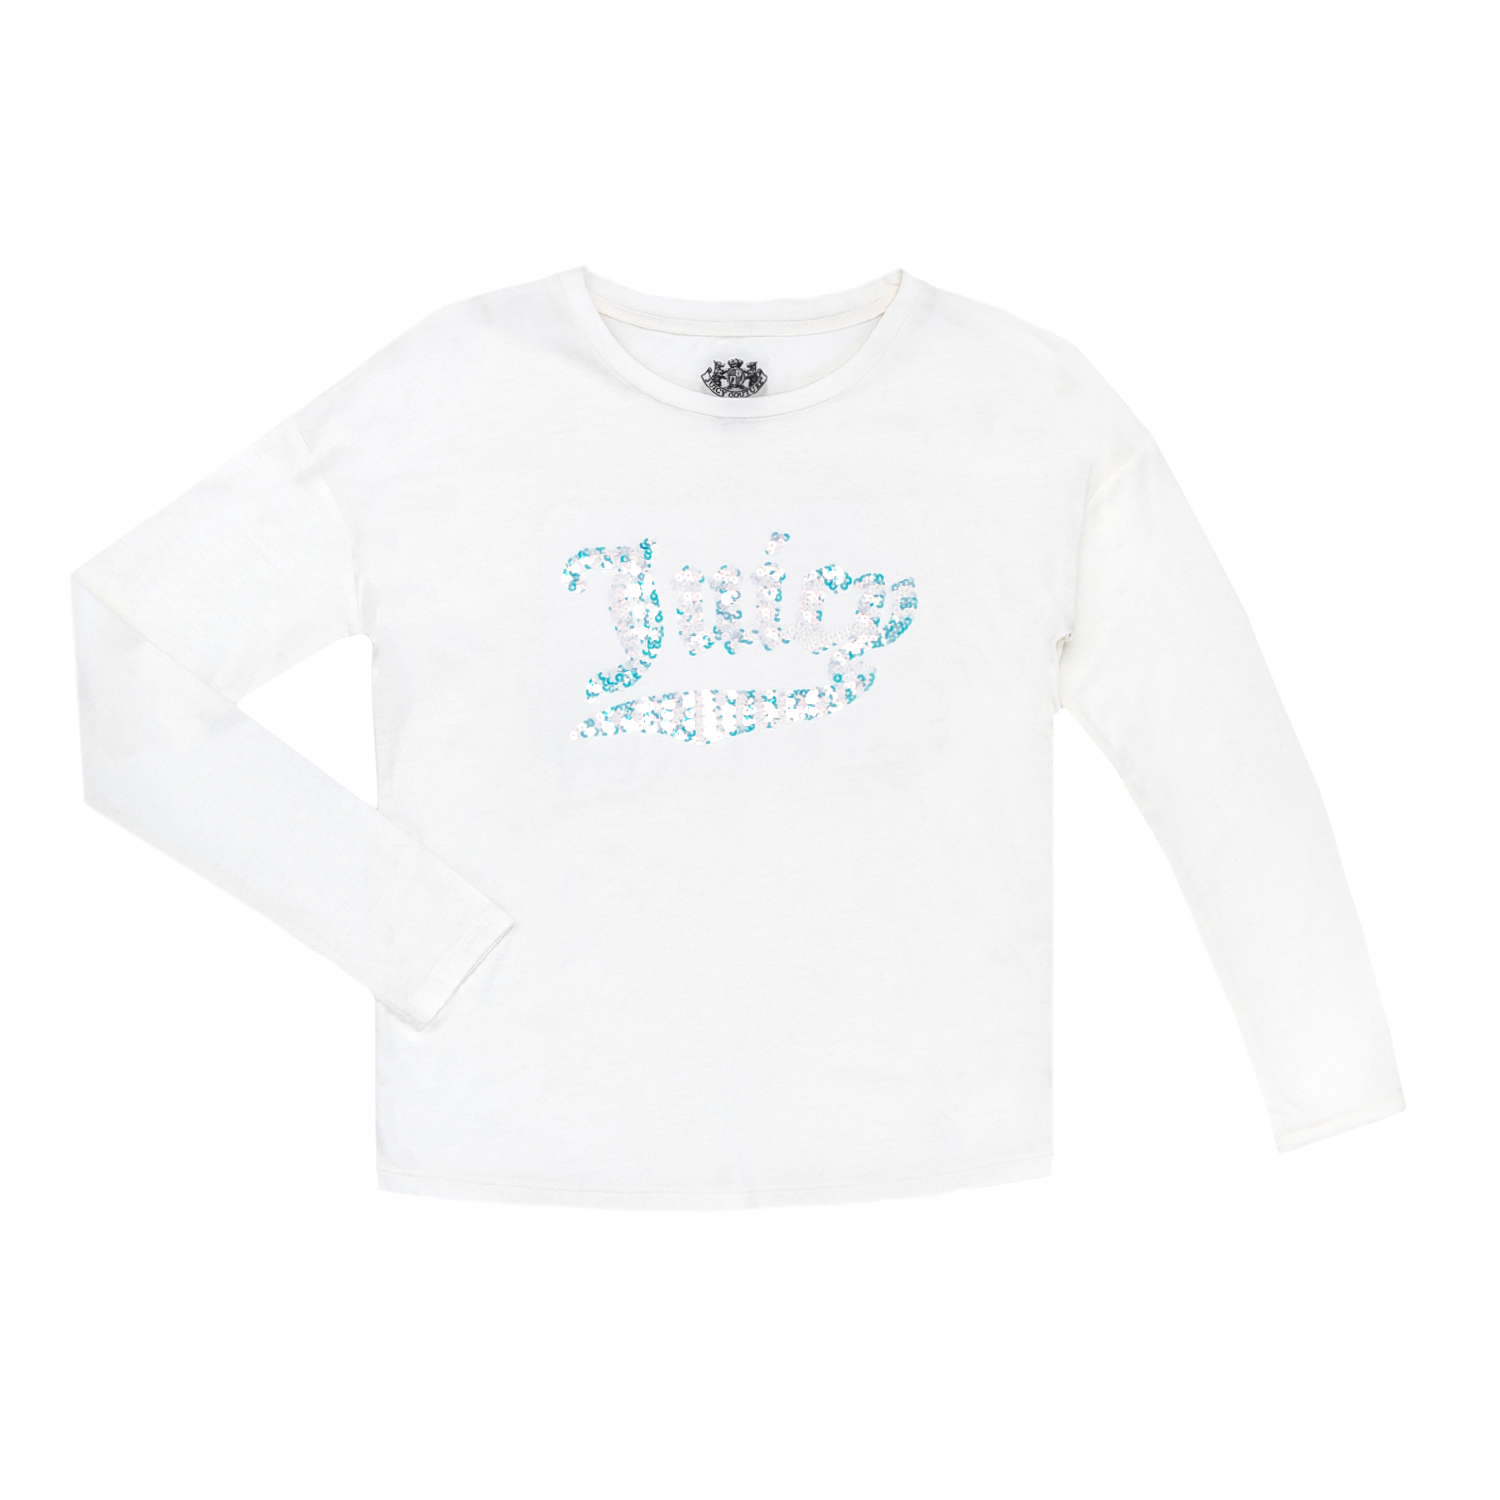 JUICY COUTURE KIDS - Παιδική μπλούζα JUICY COUTURE KIDS άσπρη